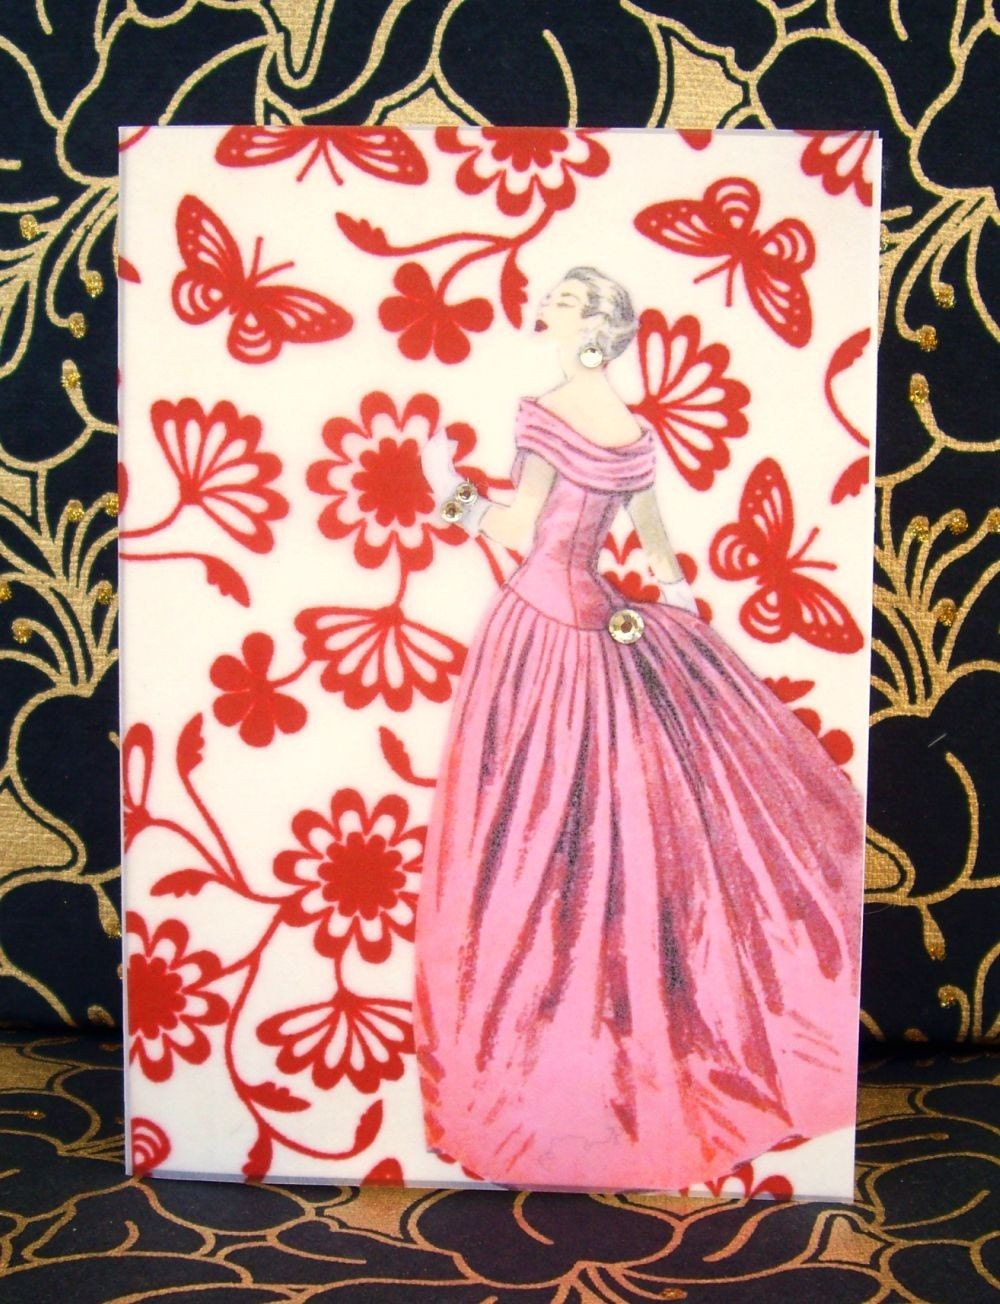 Vivien Card / Vintage Printed Collection / 50s Glamour Girl / Handmade Greeting Card